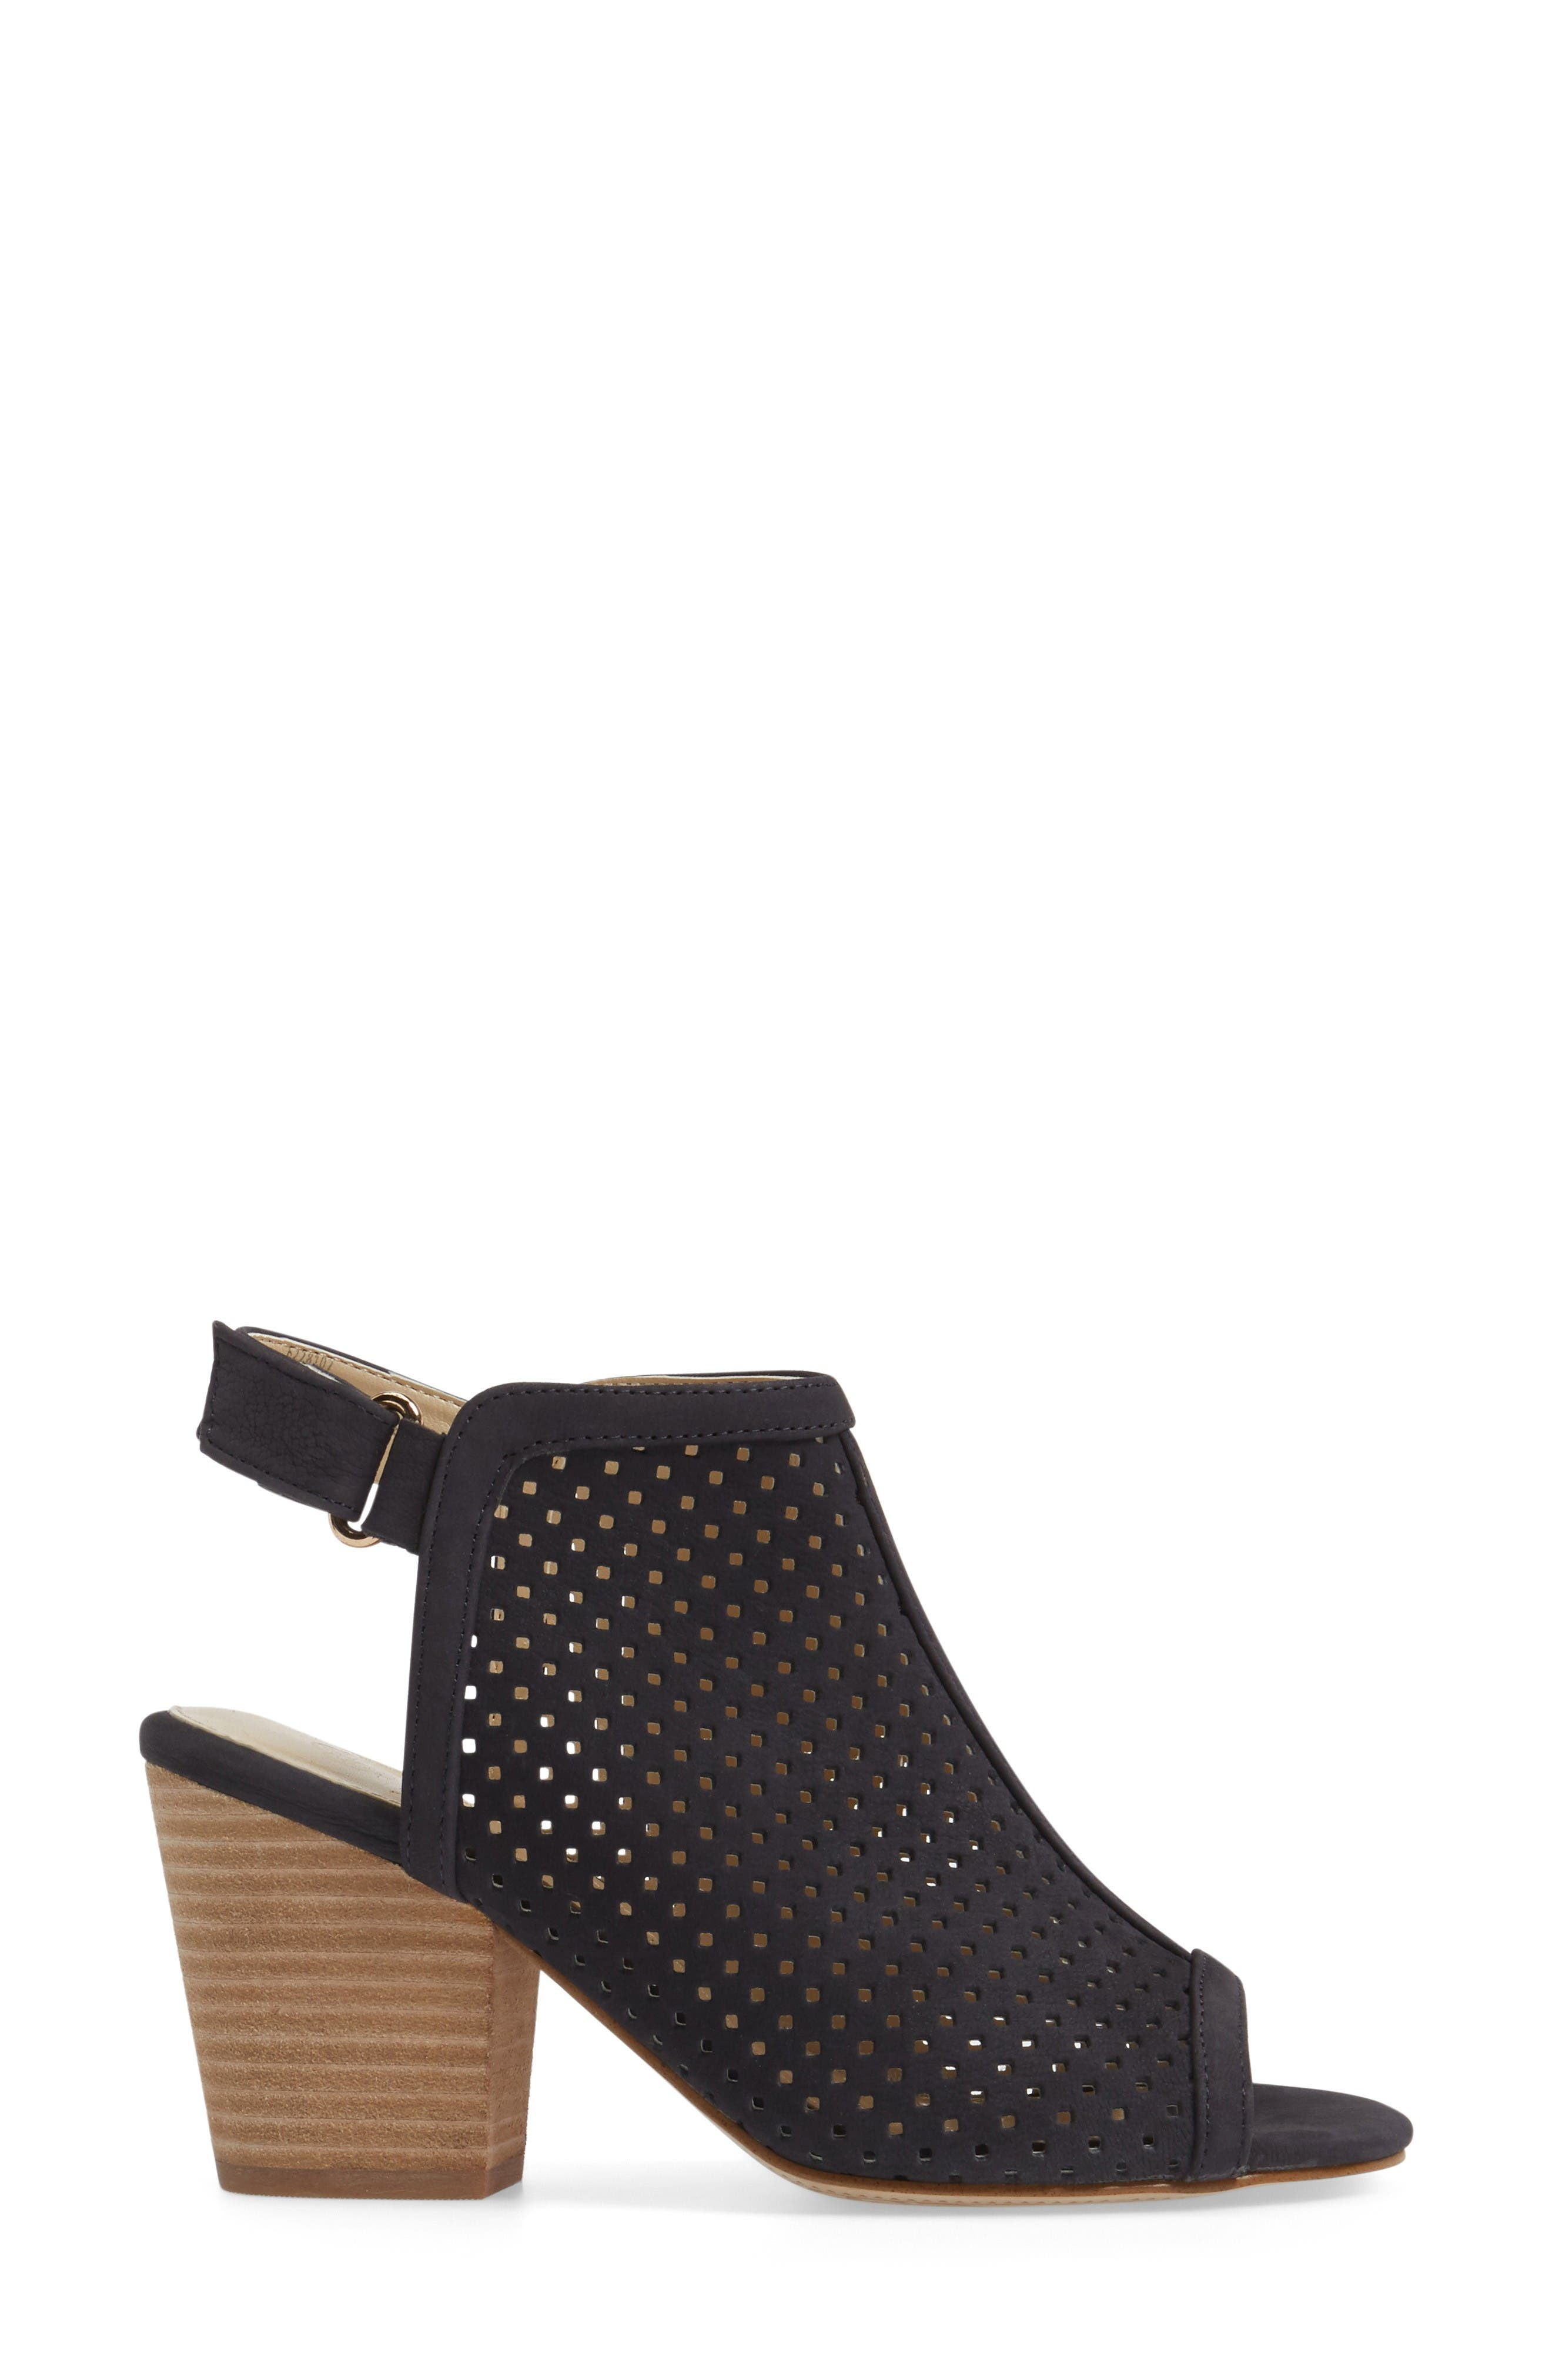 Alternate Image 3  - Isolá 'Lora' Perforated Open-Toe Bootie Sandal (Women)